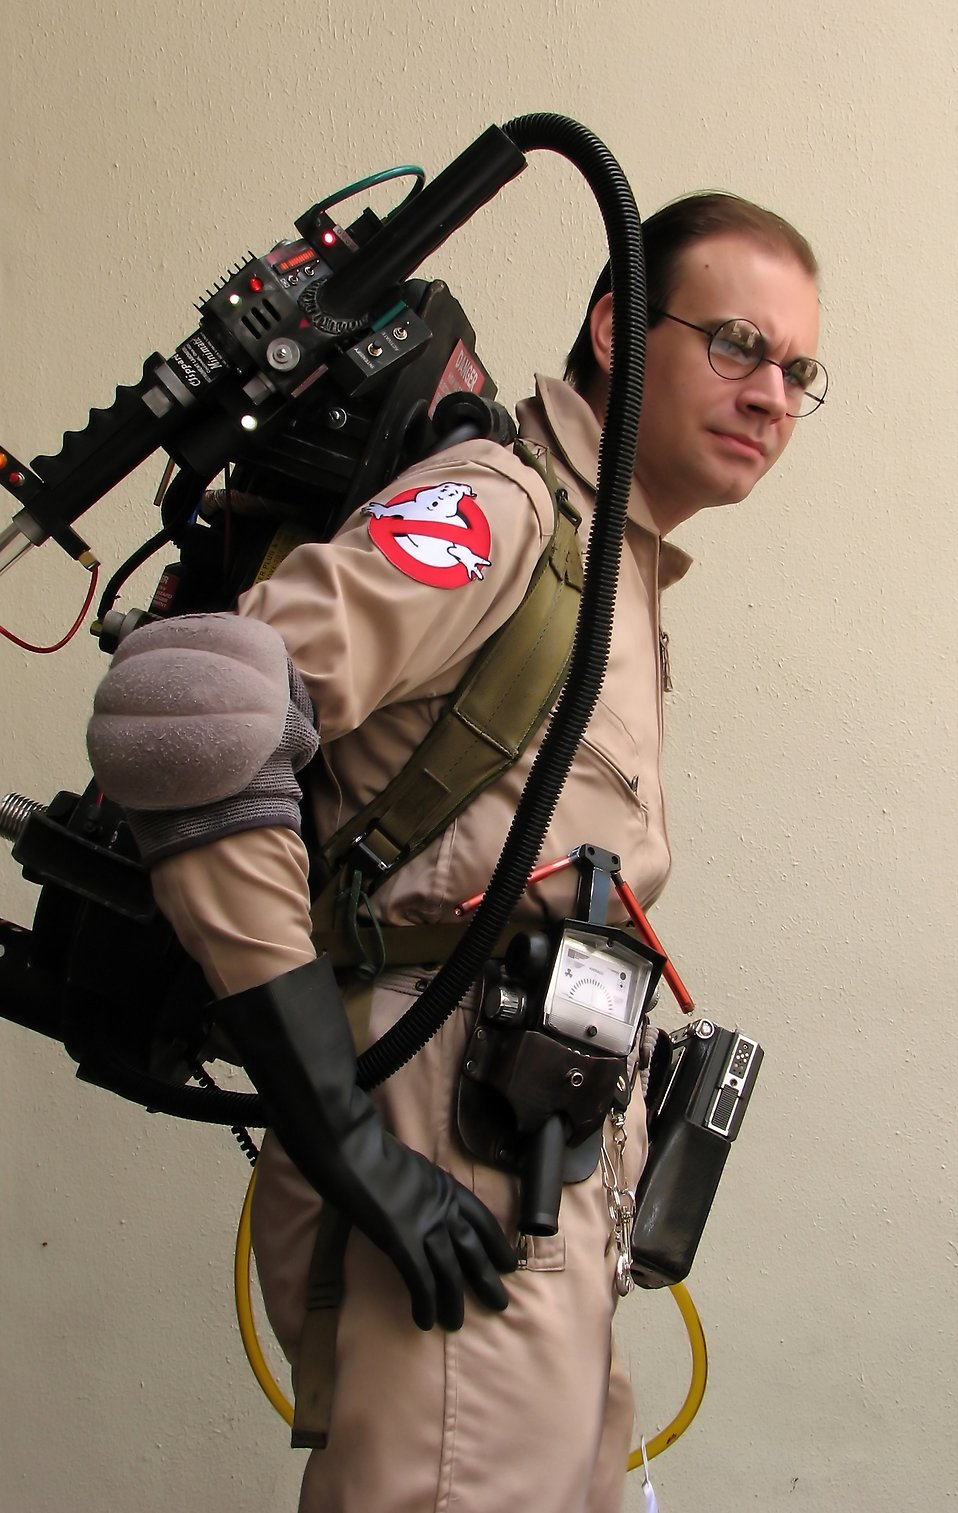 A man in a Ghostbusters costume at Dragoncon 2009 in Atlanta Georgia  Free Stock ?  sc 1 st  FreeStockPhotos.biz & Ghostbuster | Free Stock Photo | A man in a Ghostbusters costume at ...